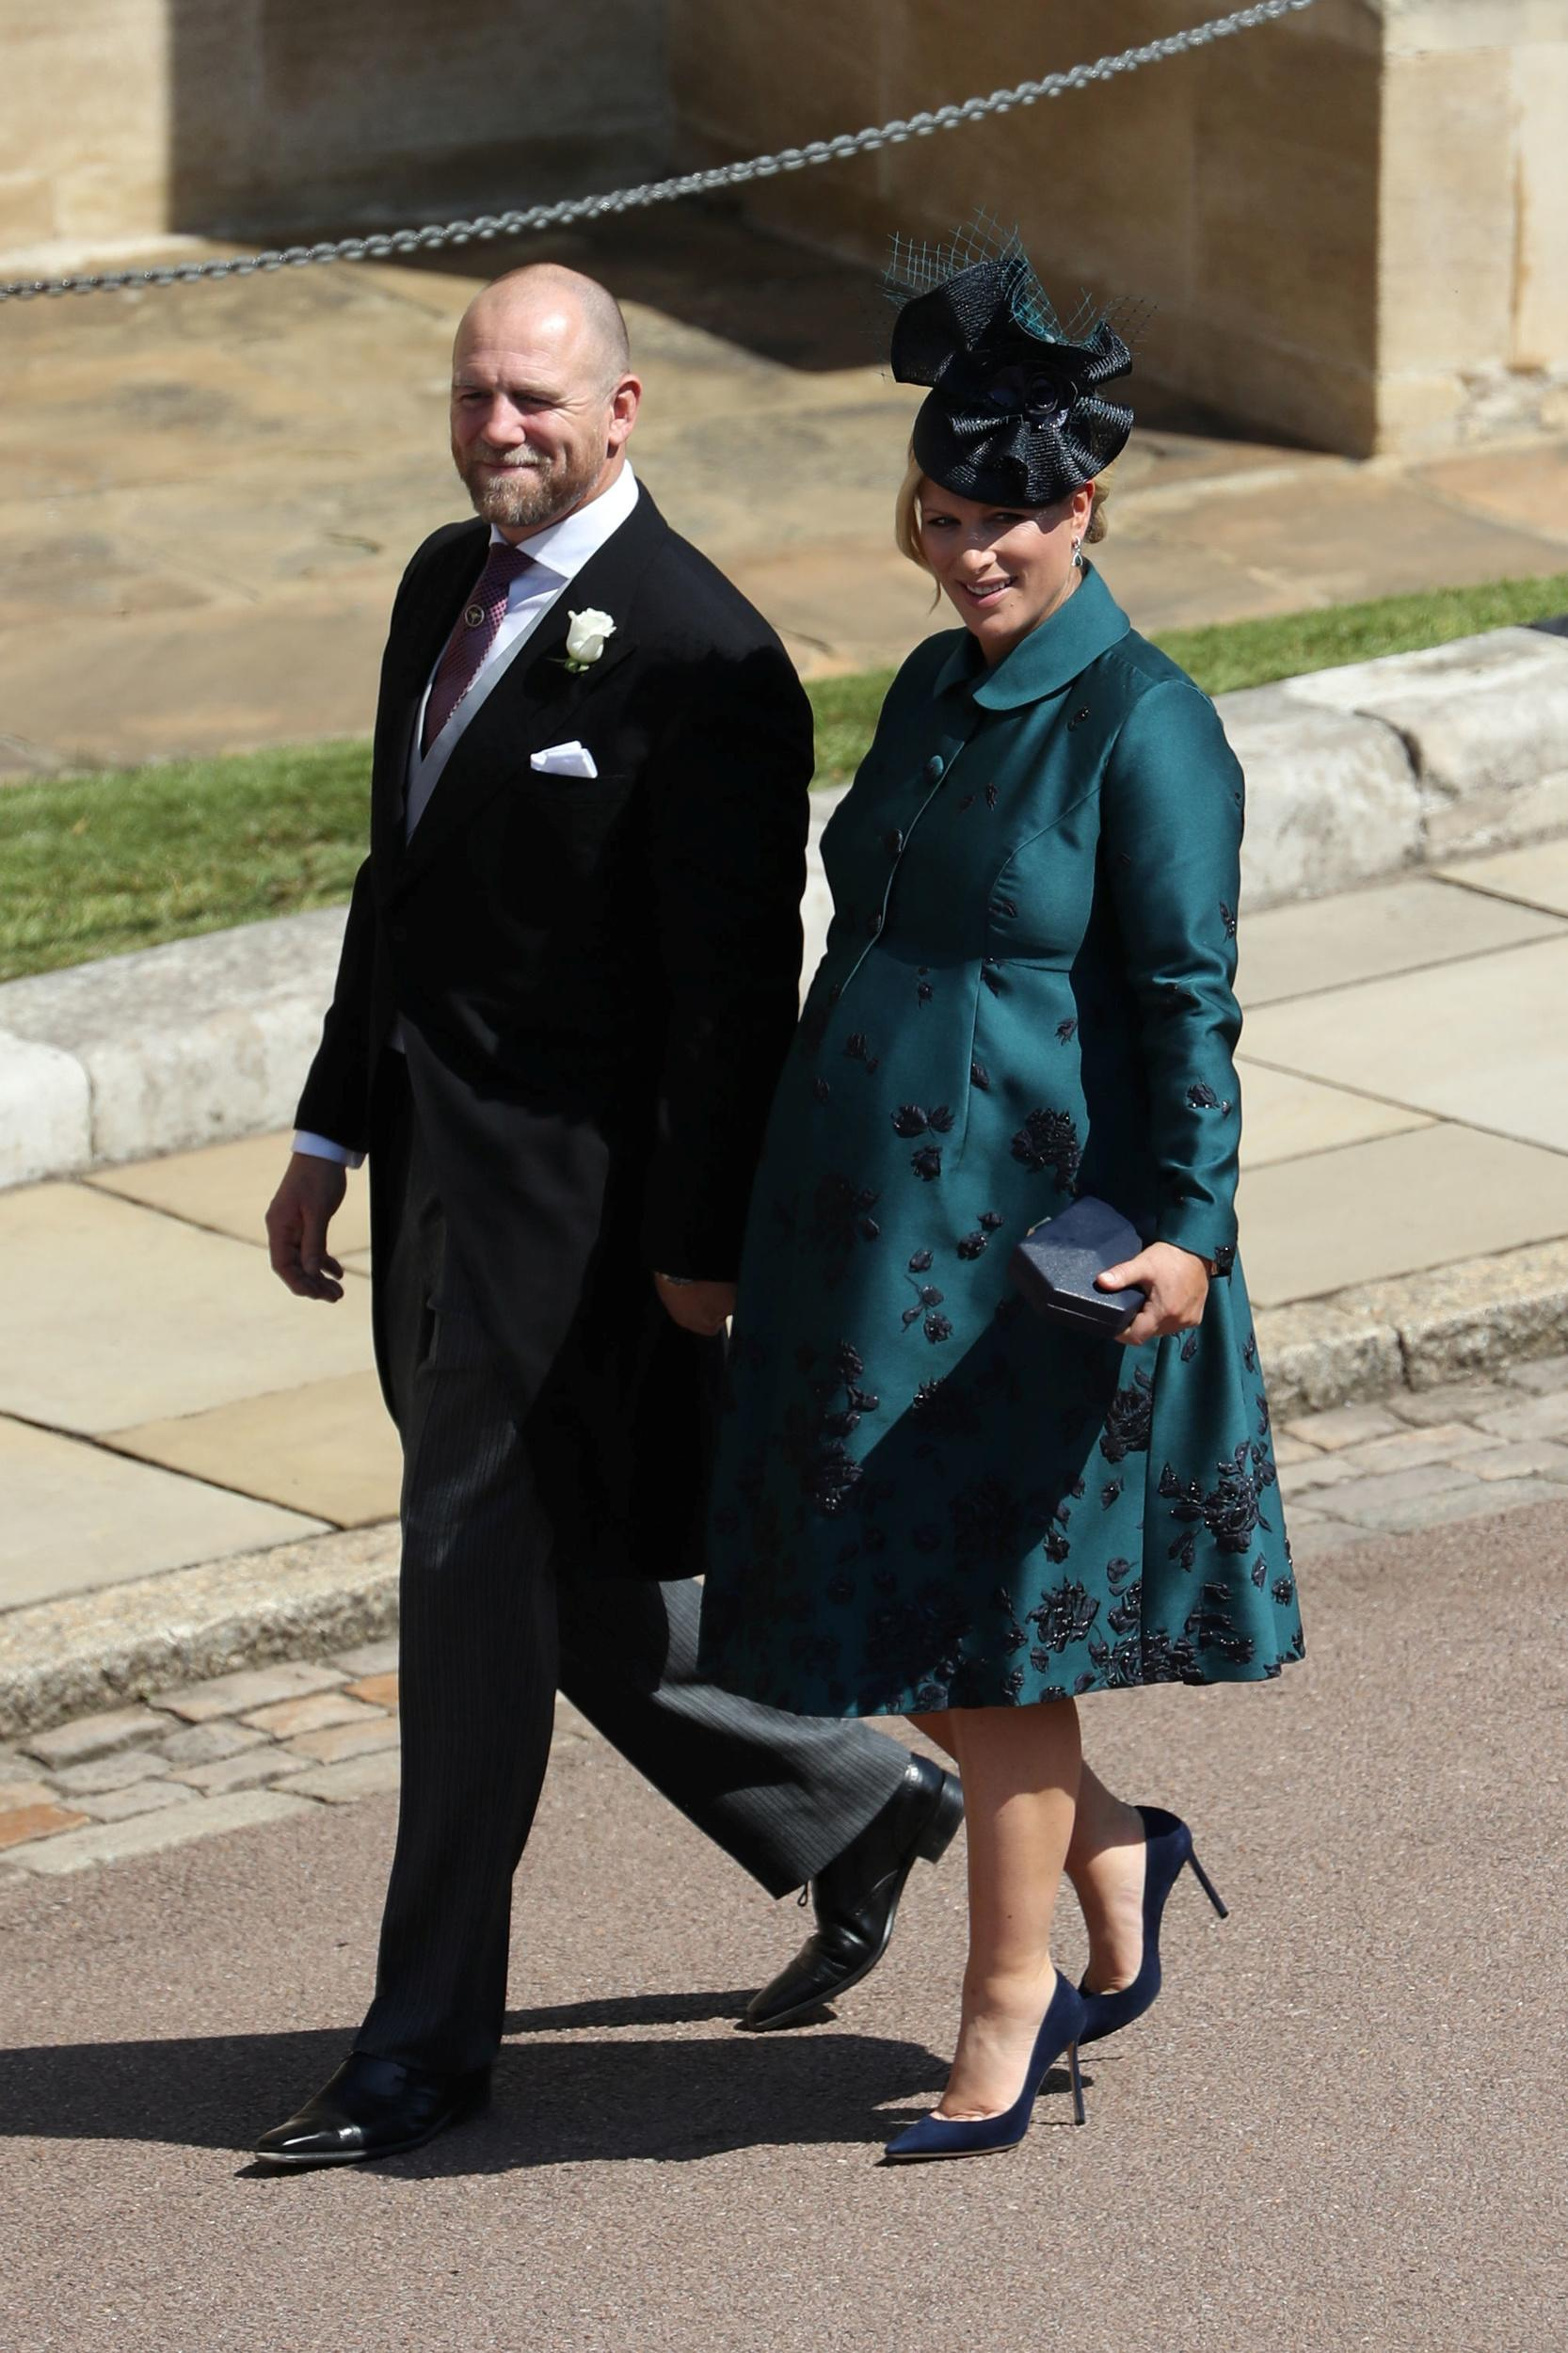 MIke Tindall and Zara Tindall arrive at St George's Chapel in Windsor Castle for the wedding of Prince Harry and Meghan Markle.  Saturday May 19, 2018. Andrew Milligan/Pool via REUTERS